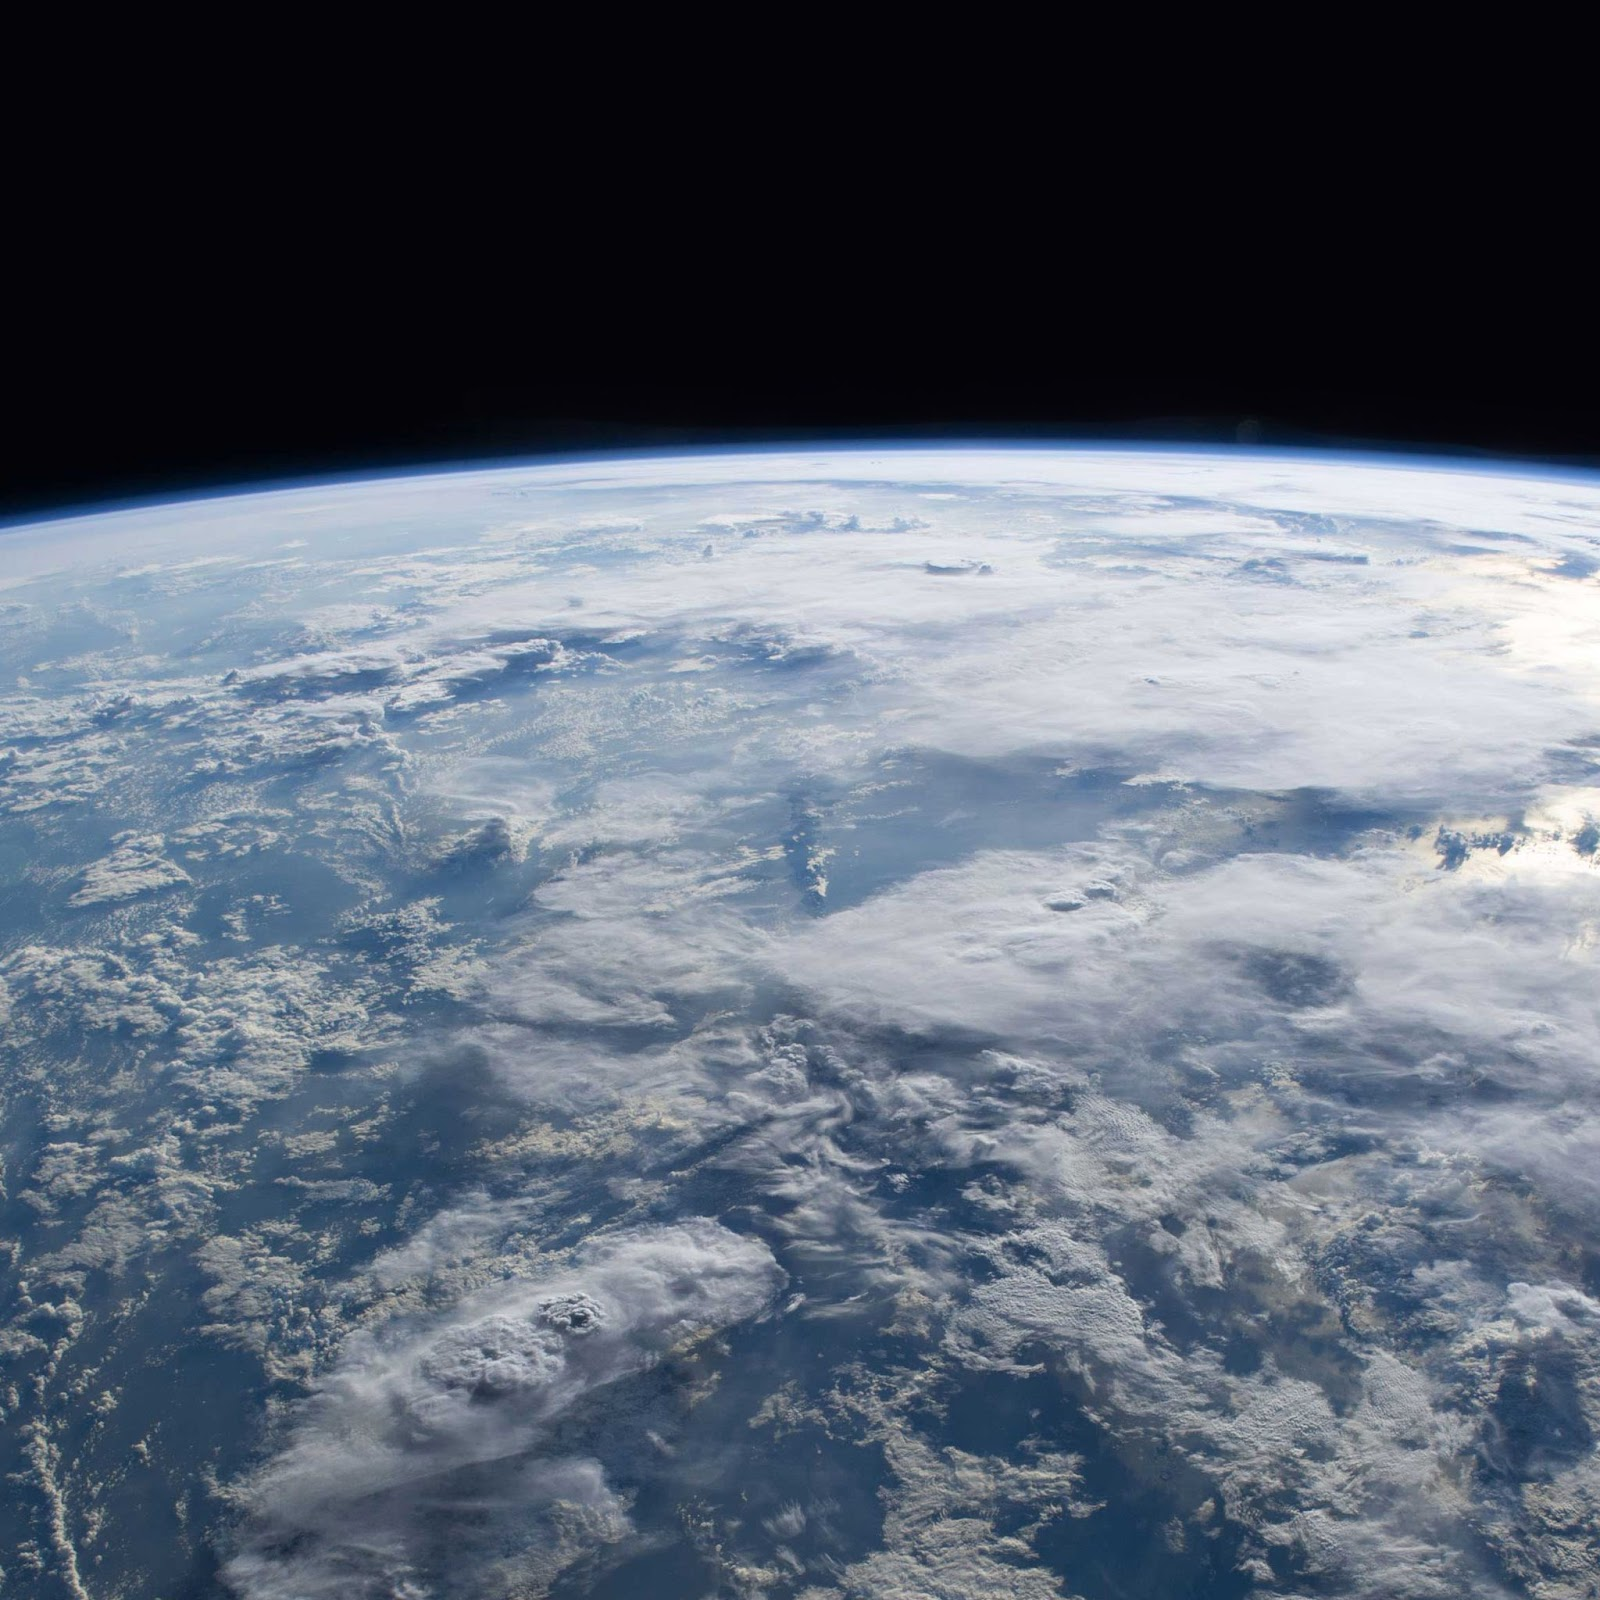 Earth seen from space.